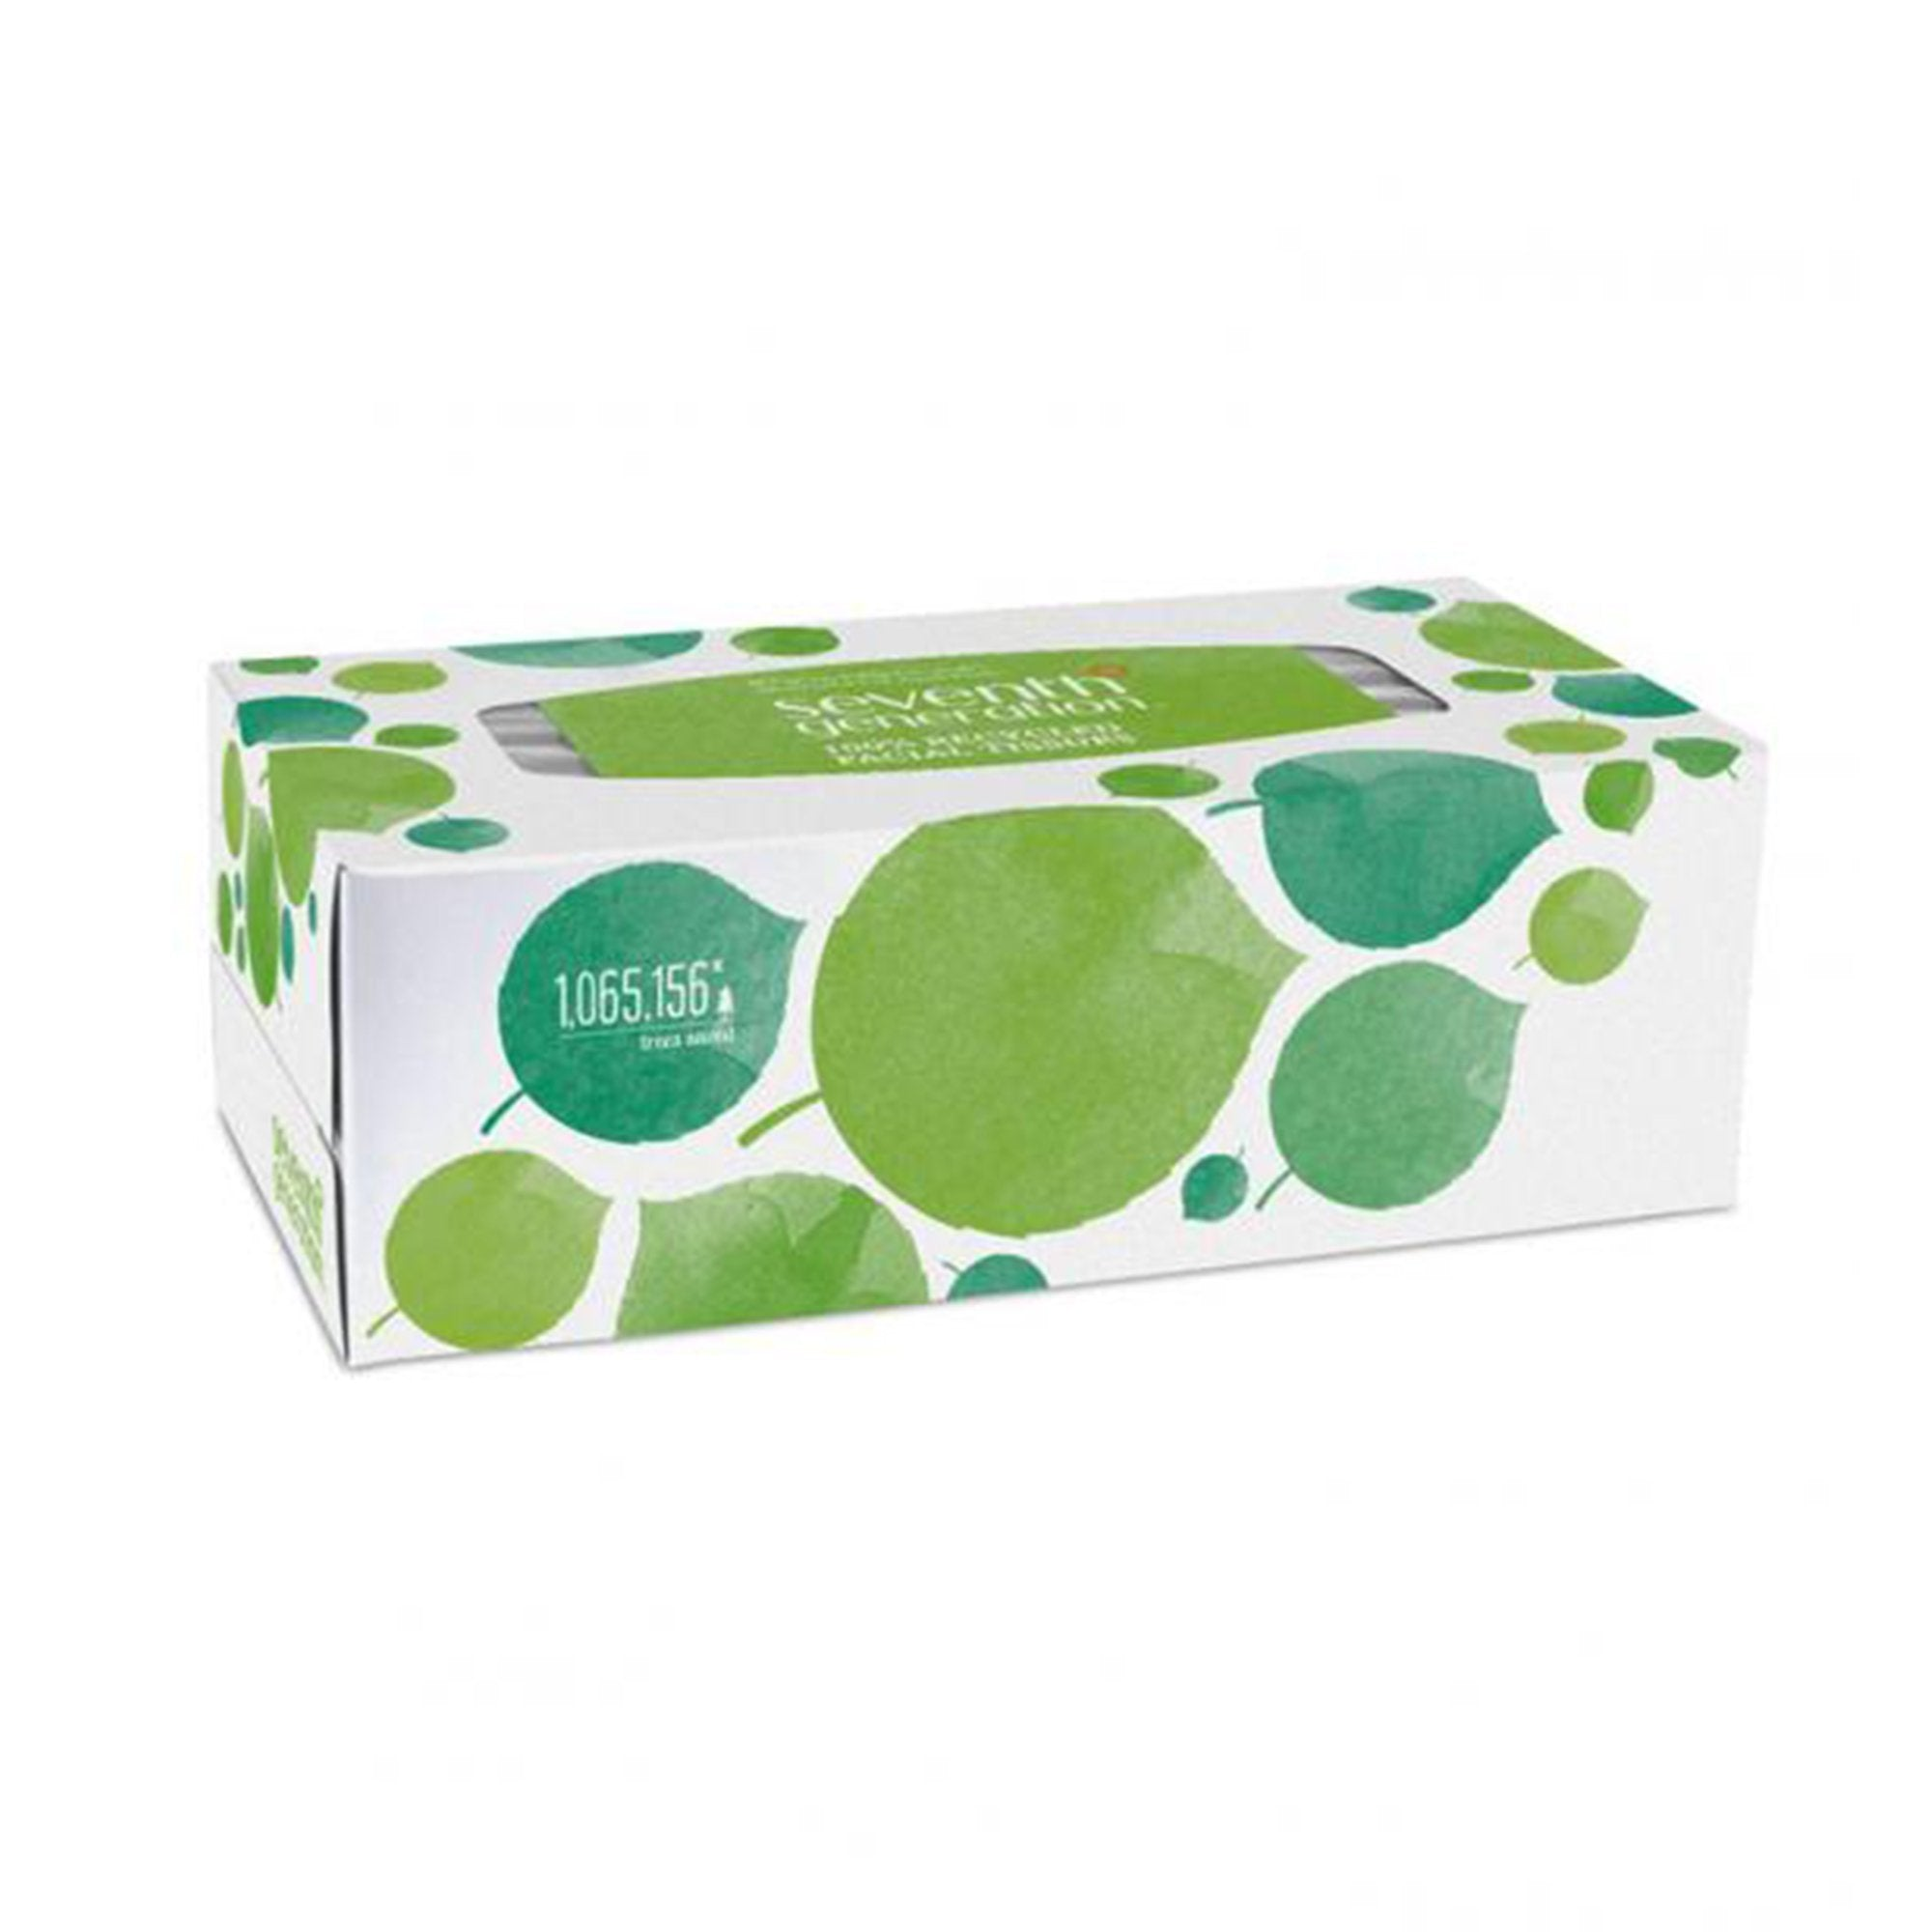 white box with green leaf design. contains 175 tissues.